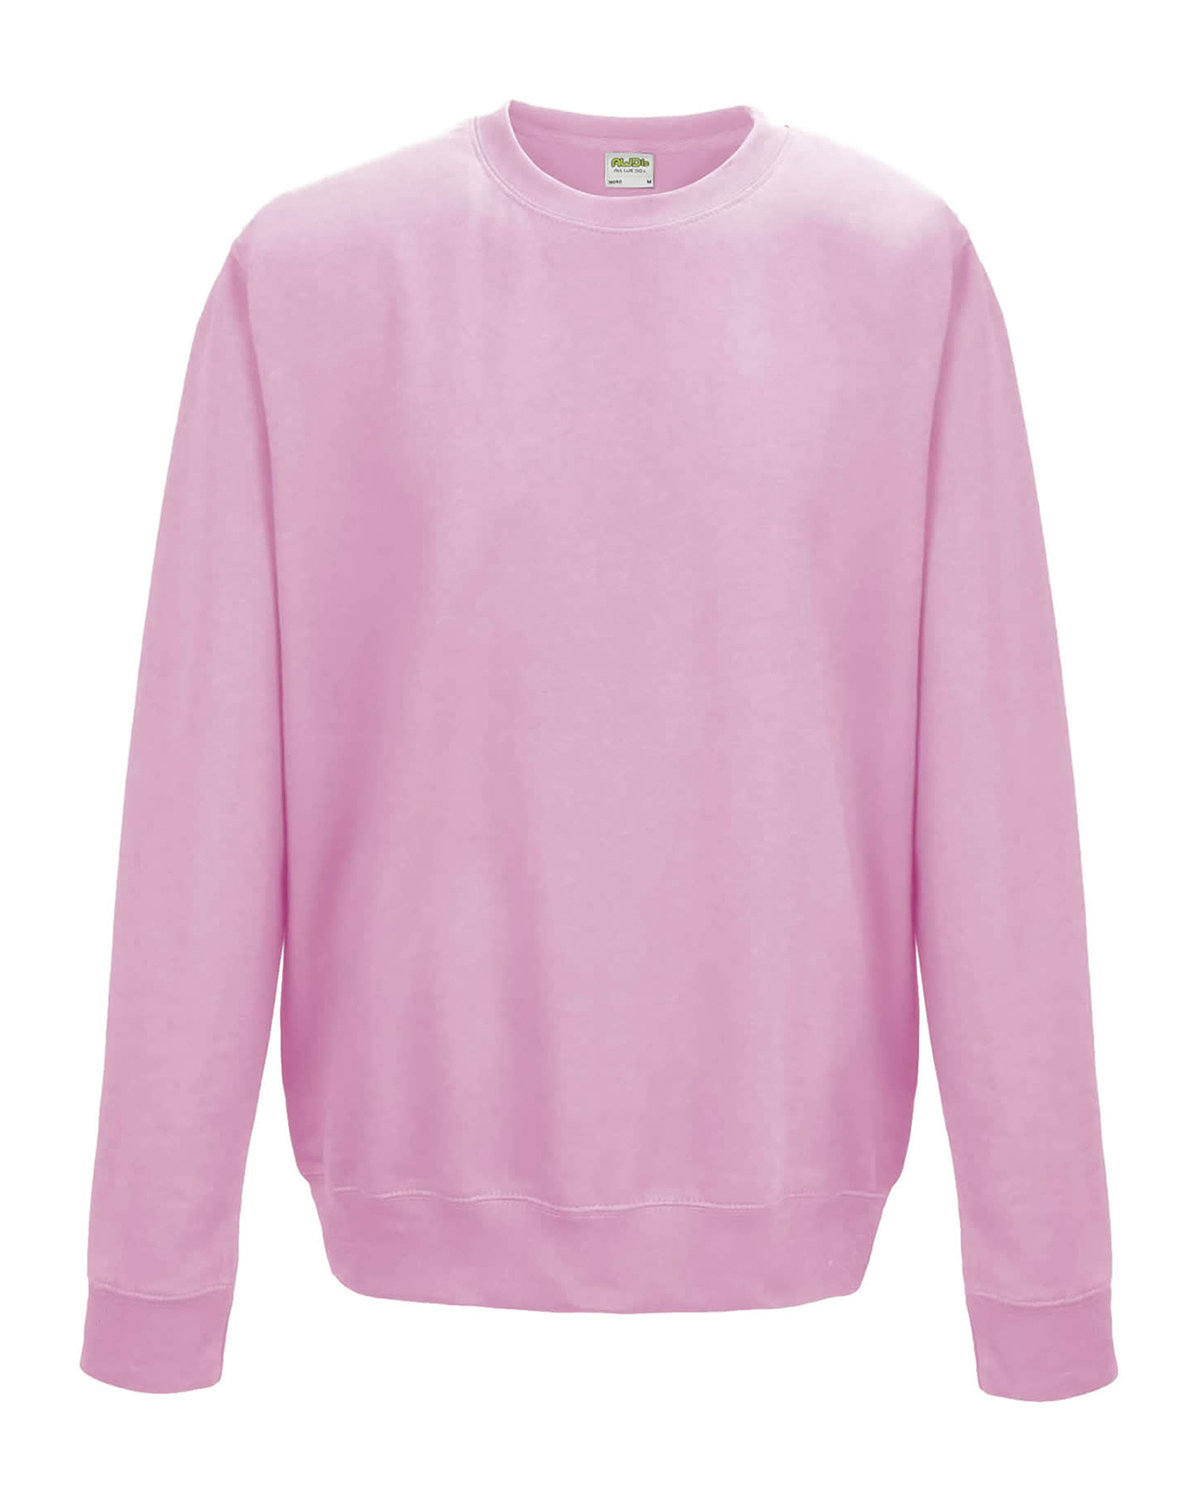 Just Hoods By AWDis Adult 80/20 Midweight College Crewneck Sweatshirt BABY PINK